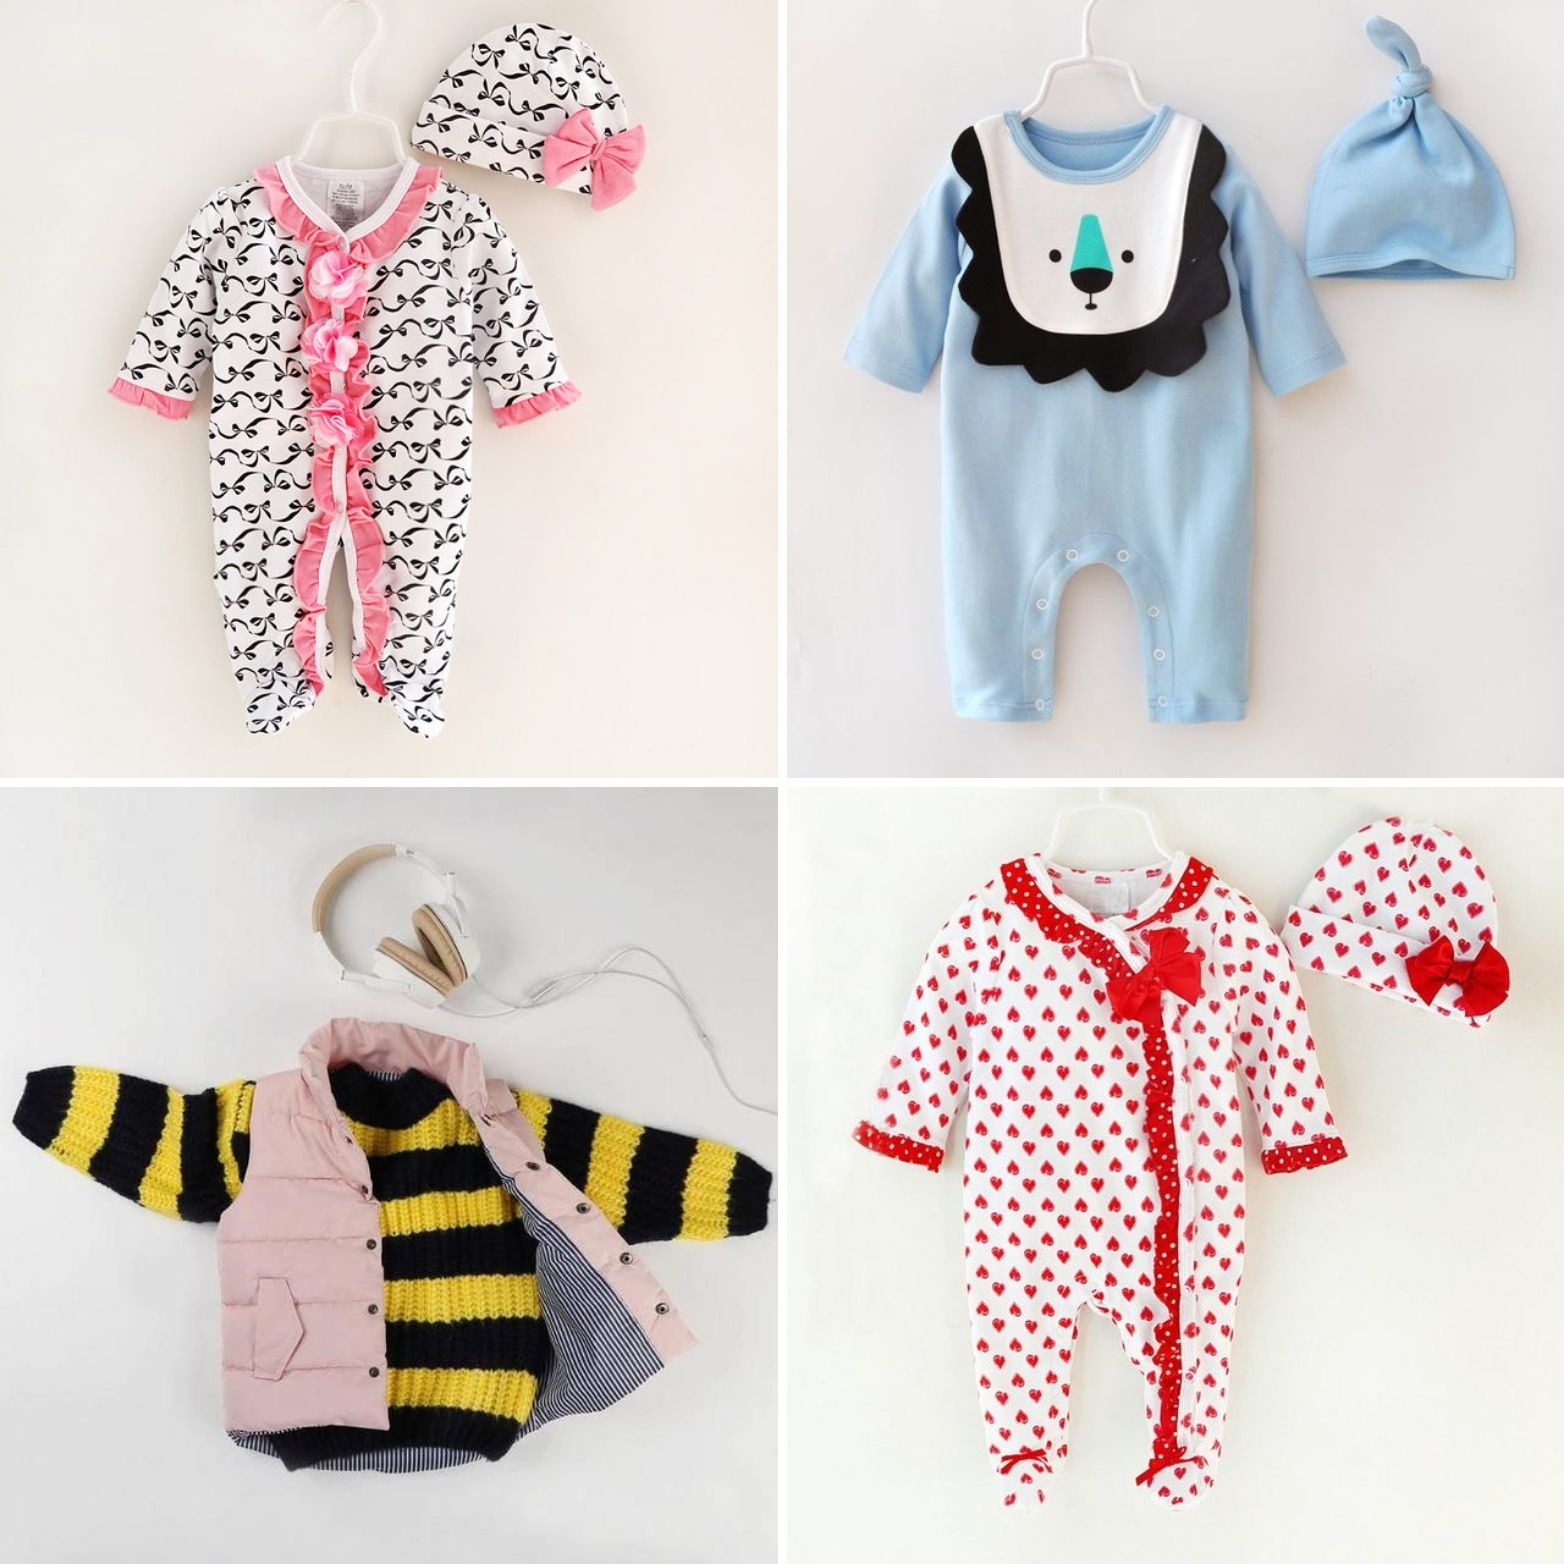 New additions at . | Kids outfits, Kids